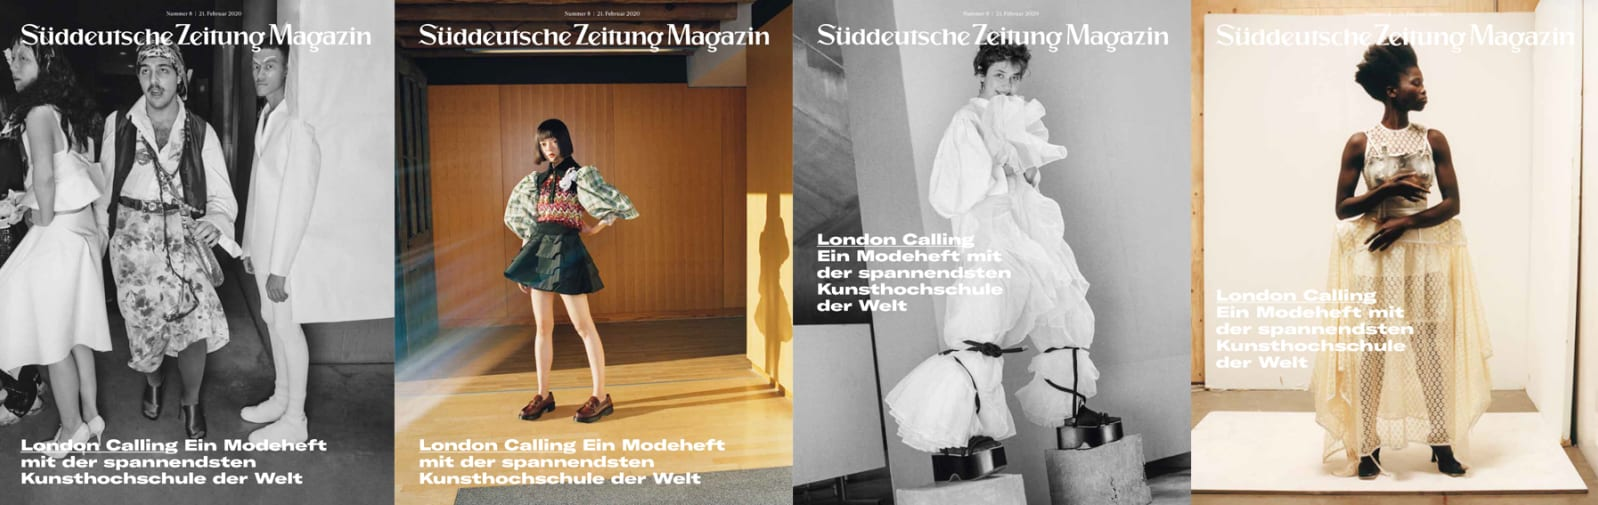 Four covers of SZ magazine showing four different portraits